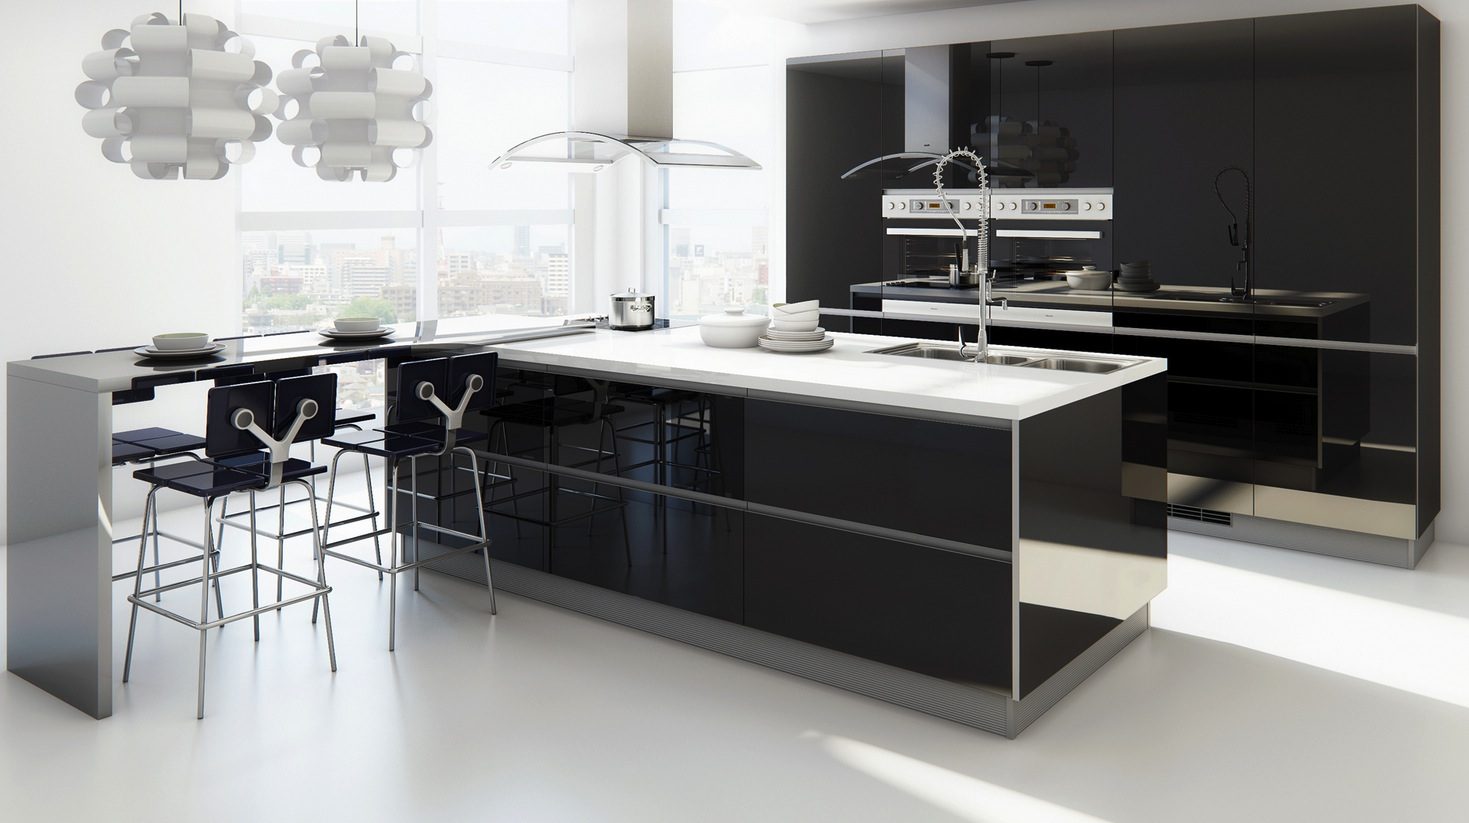 Modern kitchen tables for small spaces photo - 3